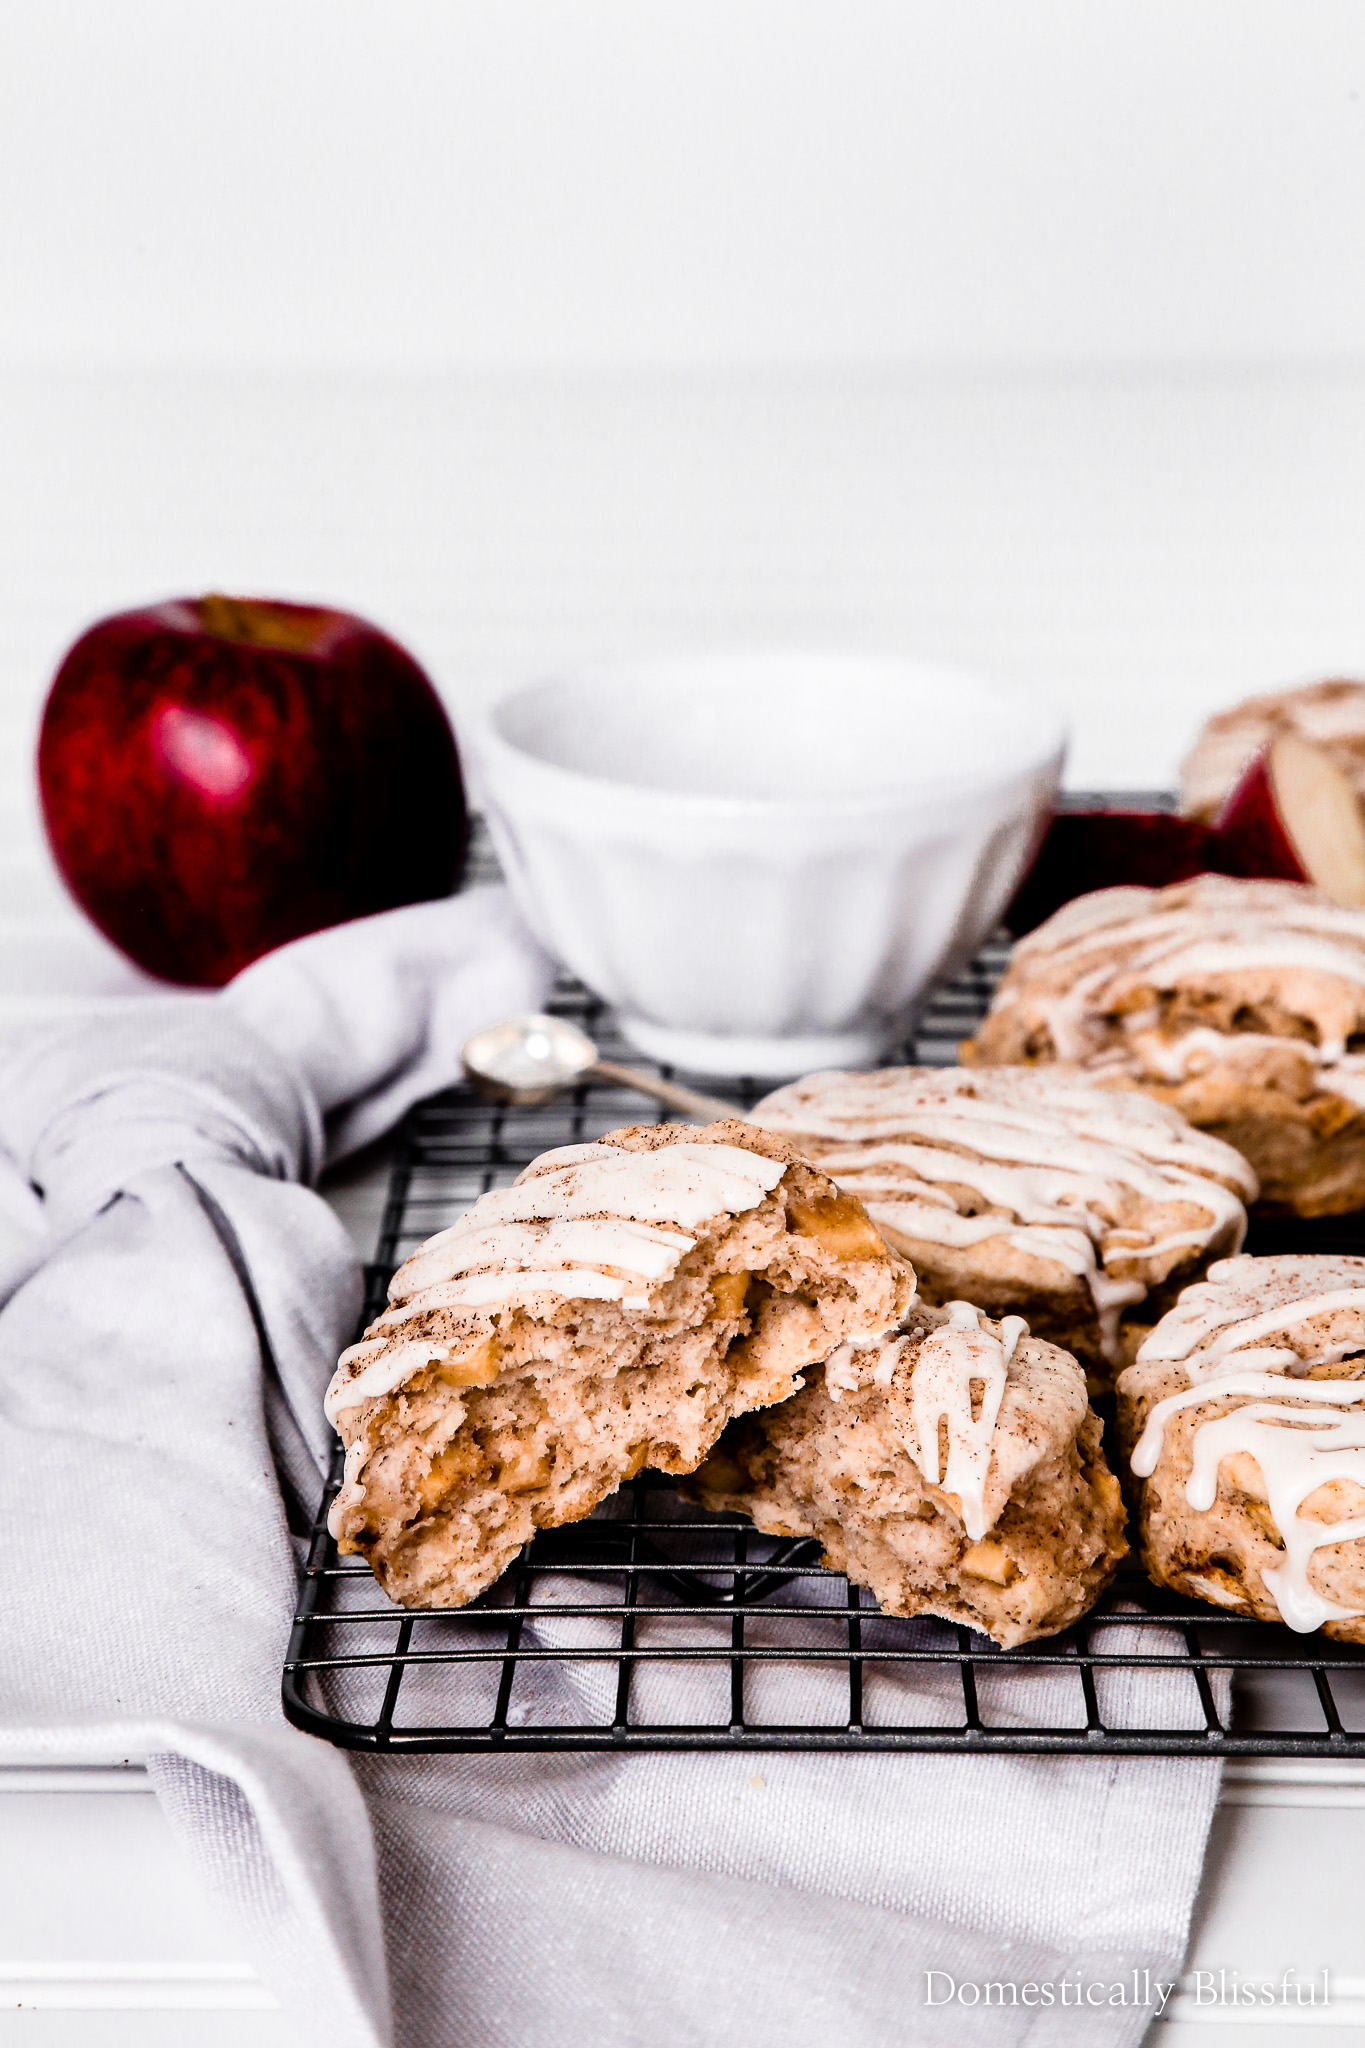 These homemade Cinnamon Apple Biscuits will fill your home with the fragrance of fall. Each bite is filled with apple cinnamon pieces making them the perfect autumn recipe for breakfast, brunch, or even dessert!